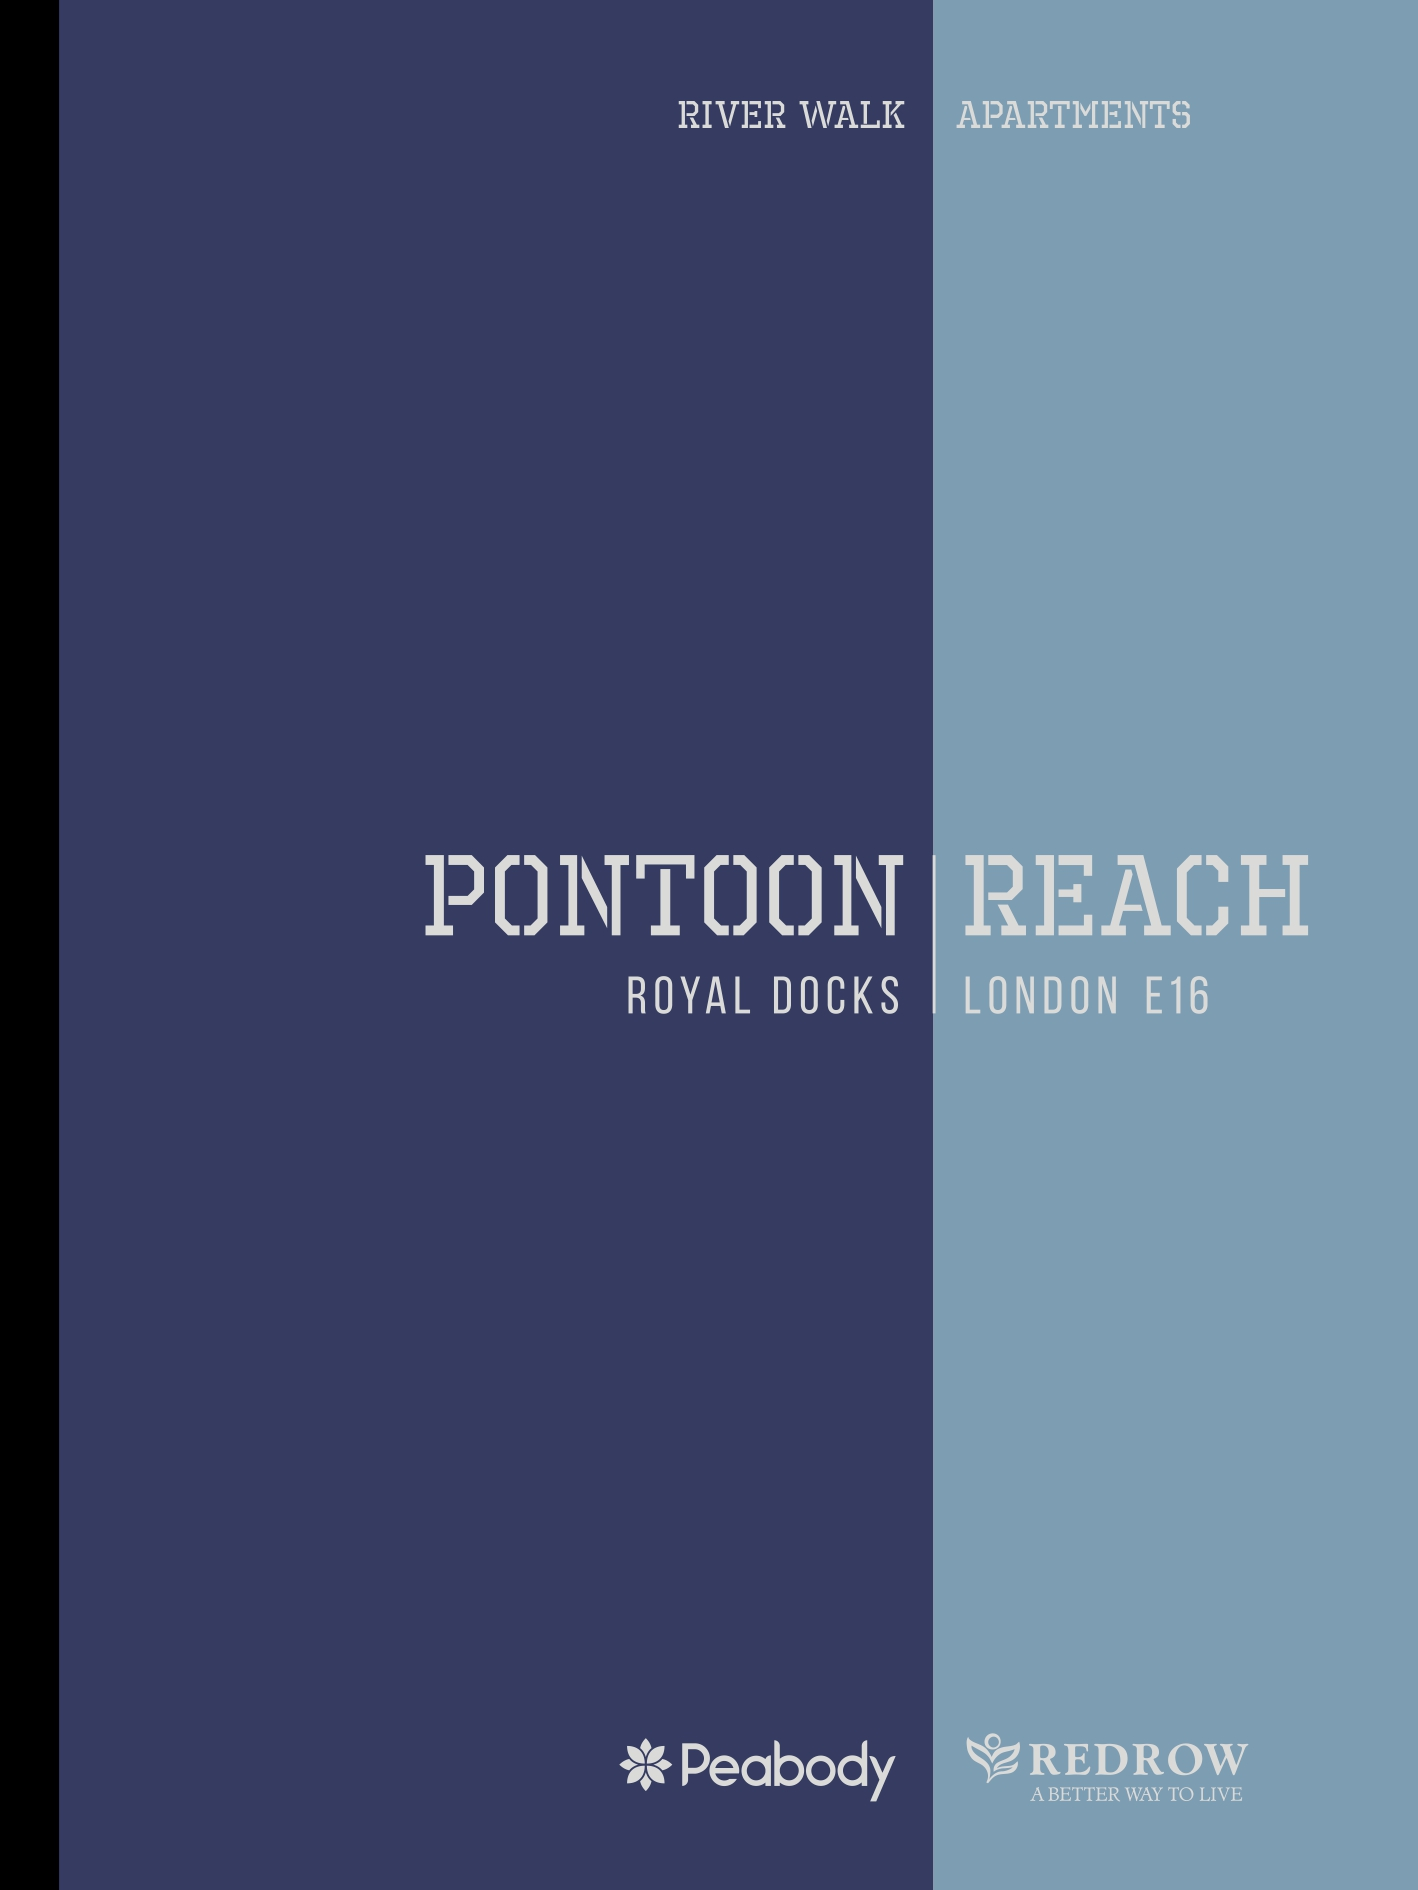 Pontoon_Reach_River_Walk_brochure_Front